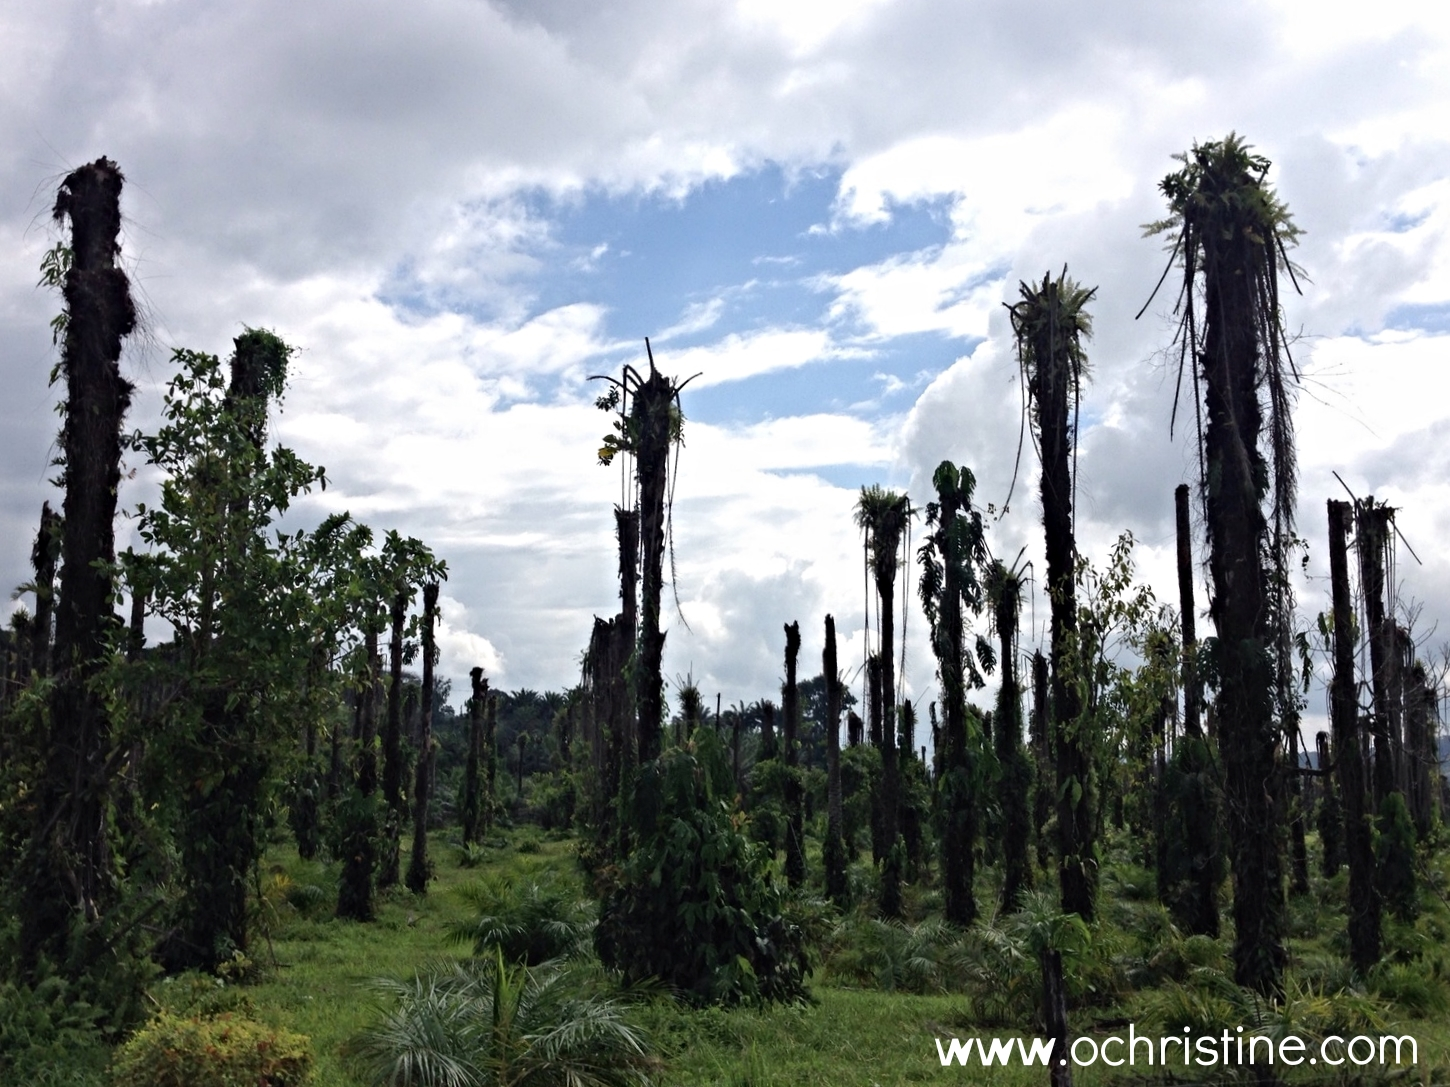 While driving out of Puerto Jimenez, we passed a peculiar field of what seemed like dead palms. We couldn't figure out if they rotted and were cut down or if it was a special type of palm. More research later...